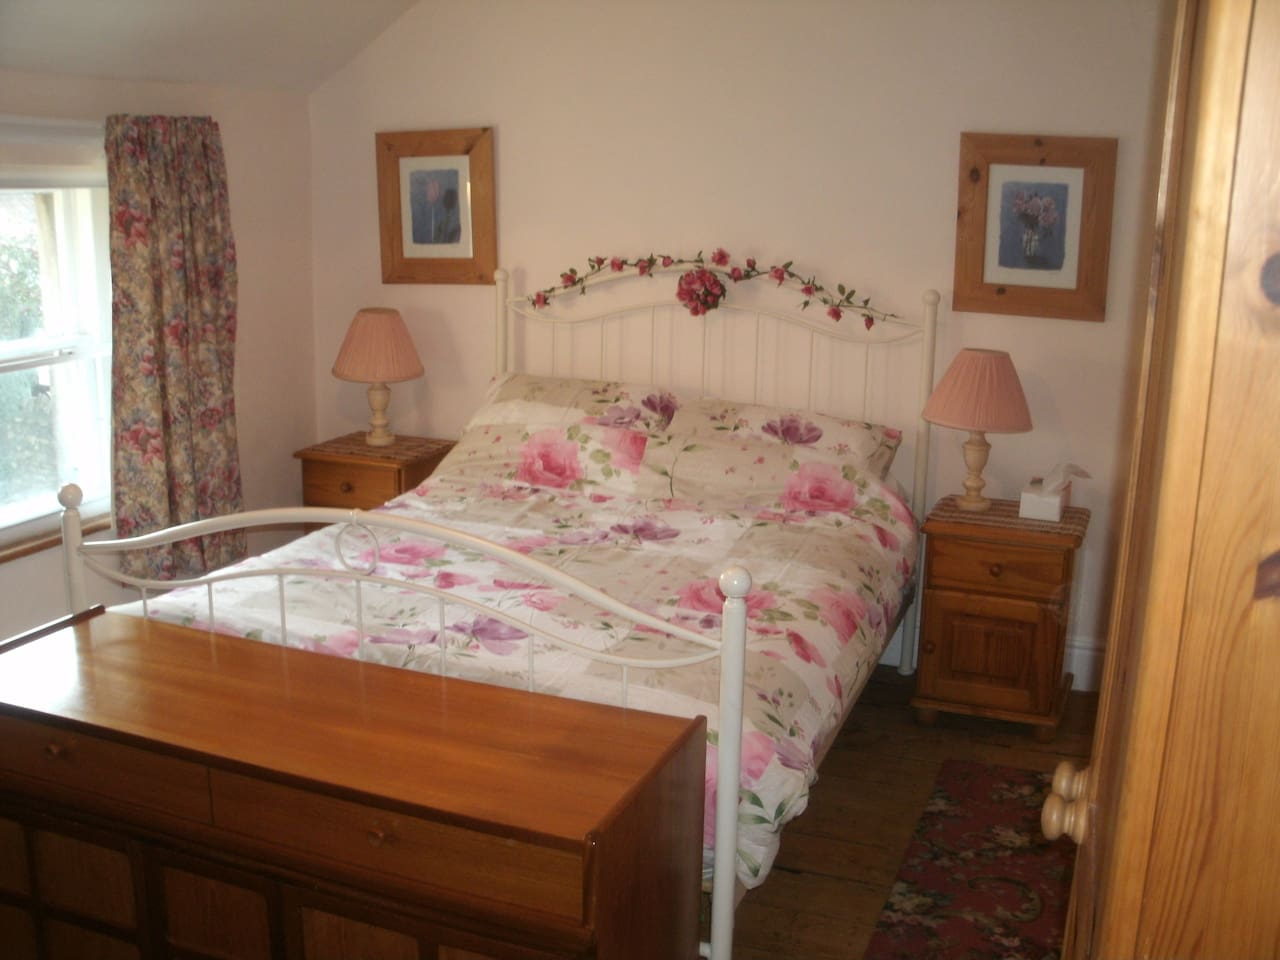 Main bedroom with standard size double bed.